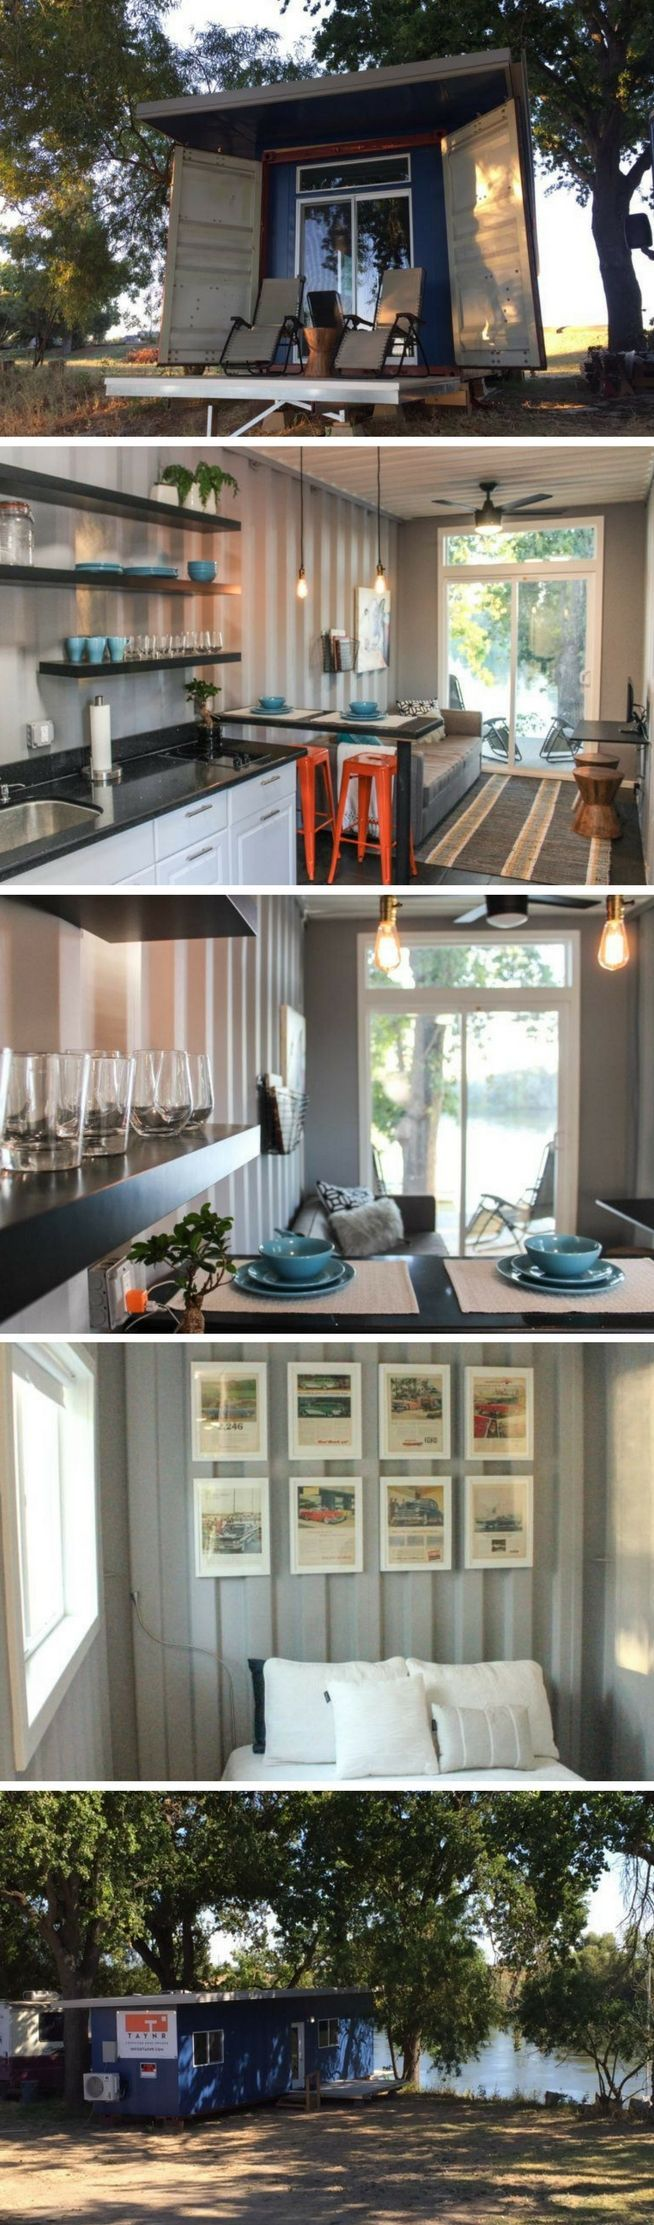 U modern shipping container home there are things you should do